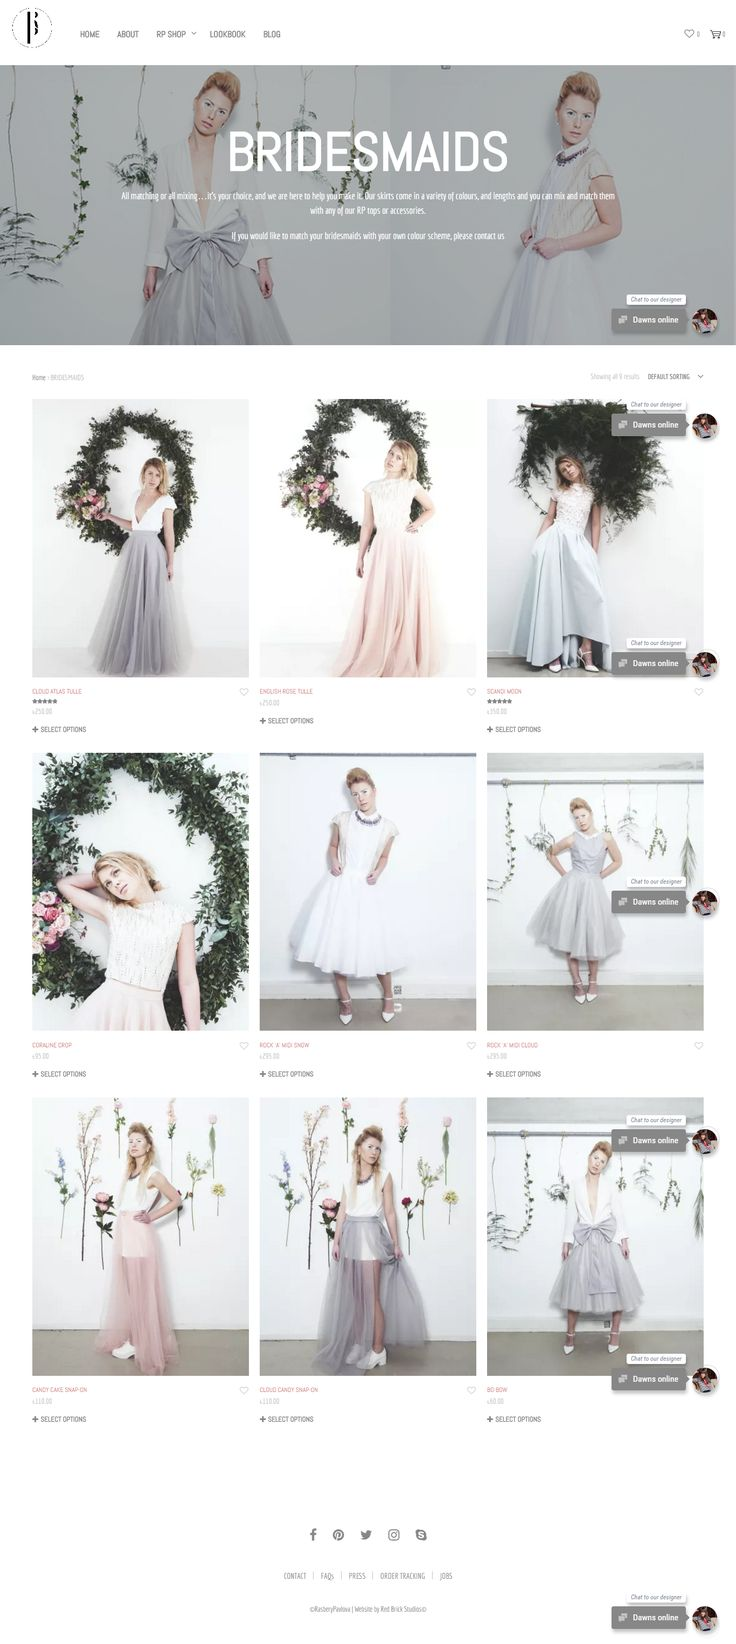 Lovely bridal site built with Shopkeeper Theme for WordPress: rasberypavlova.com. https://themeforest.net/item/shopkeeper-ecommerce-wp-theme-for-woocommerce/9553045?utm_source=pinterest.com&utm_medium=social&utm_content=rasbery-pavlova&utm_campaign=showcase #wordpress #webdesign #UX #bridal #onlineshop